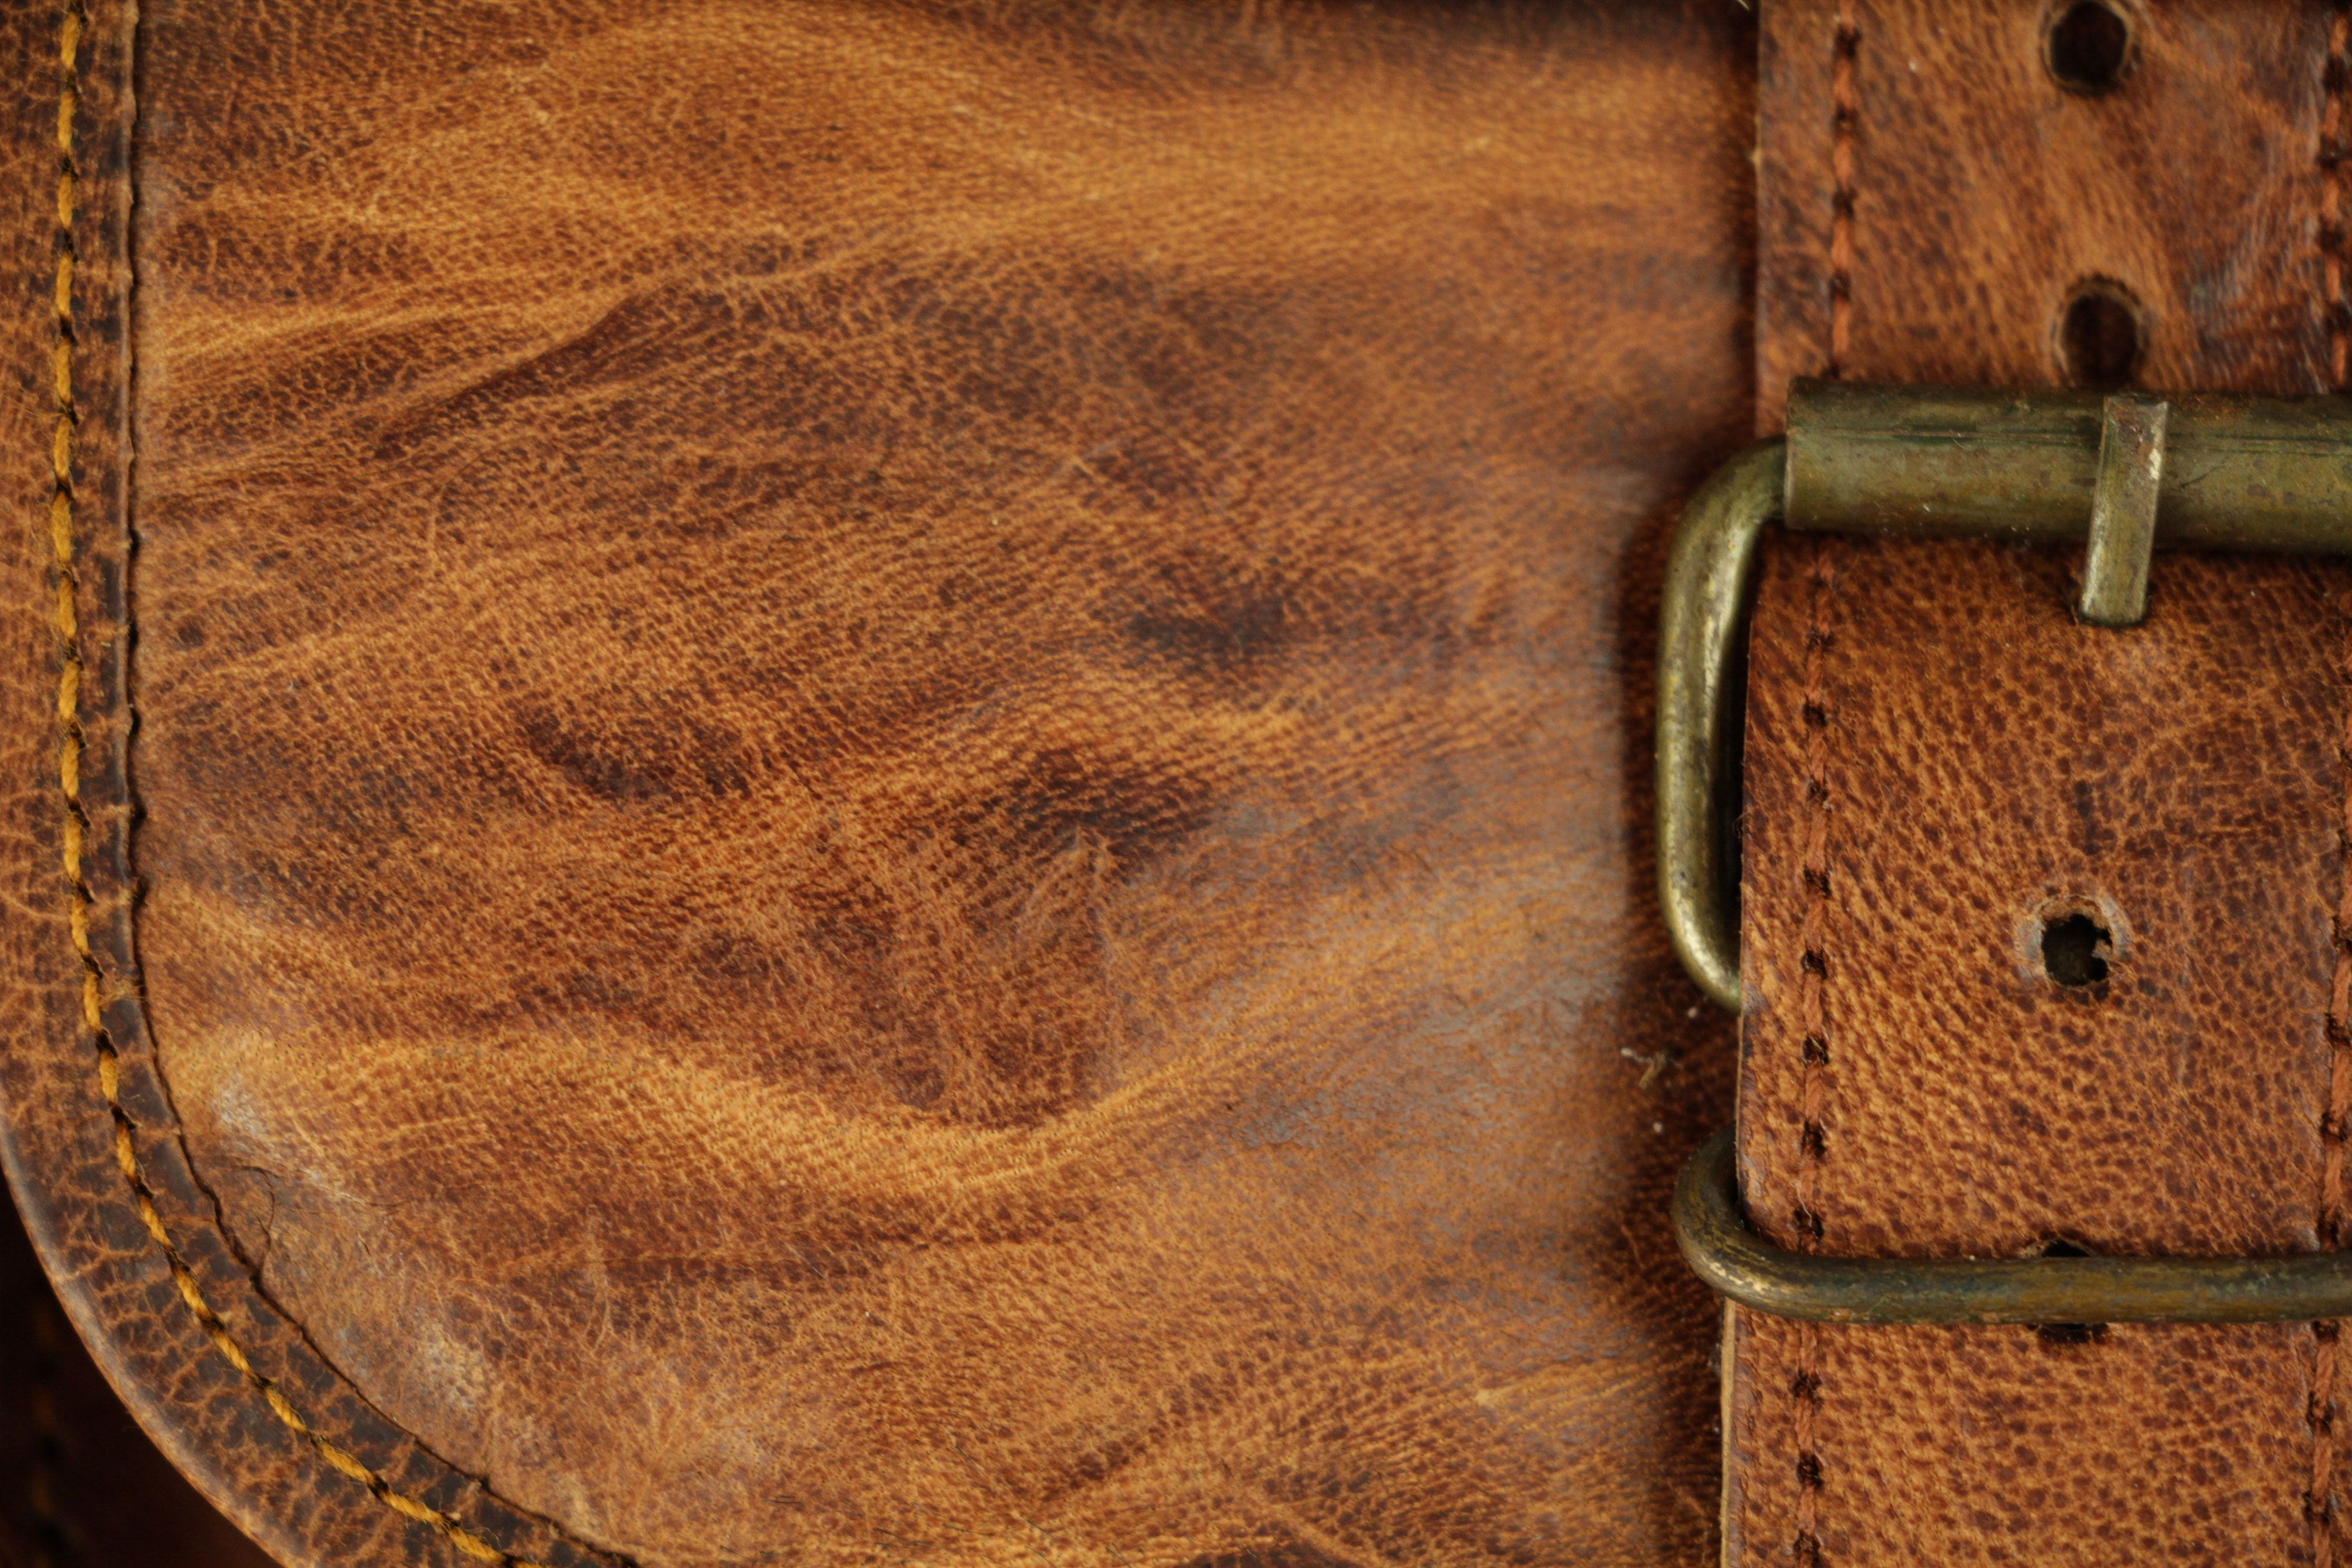 how to draw leather in photoshop